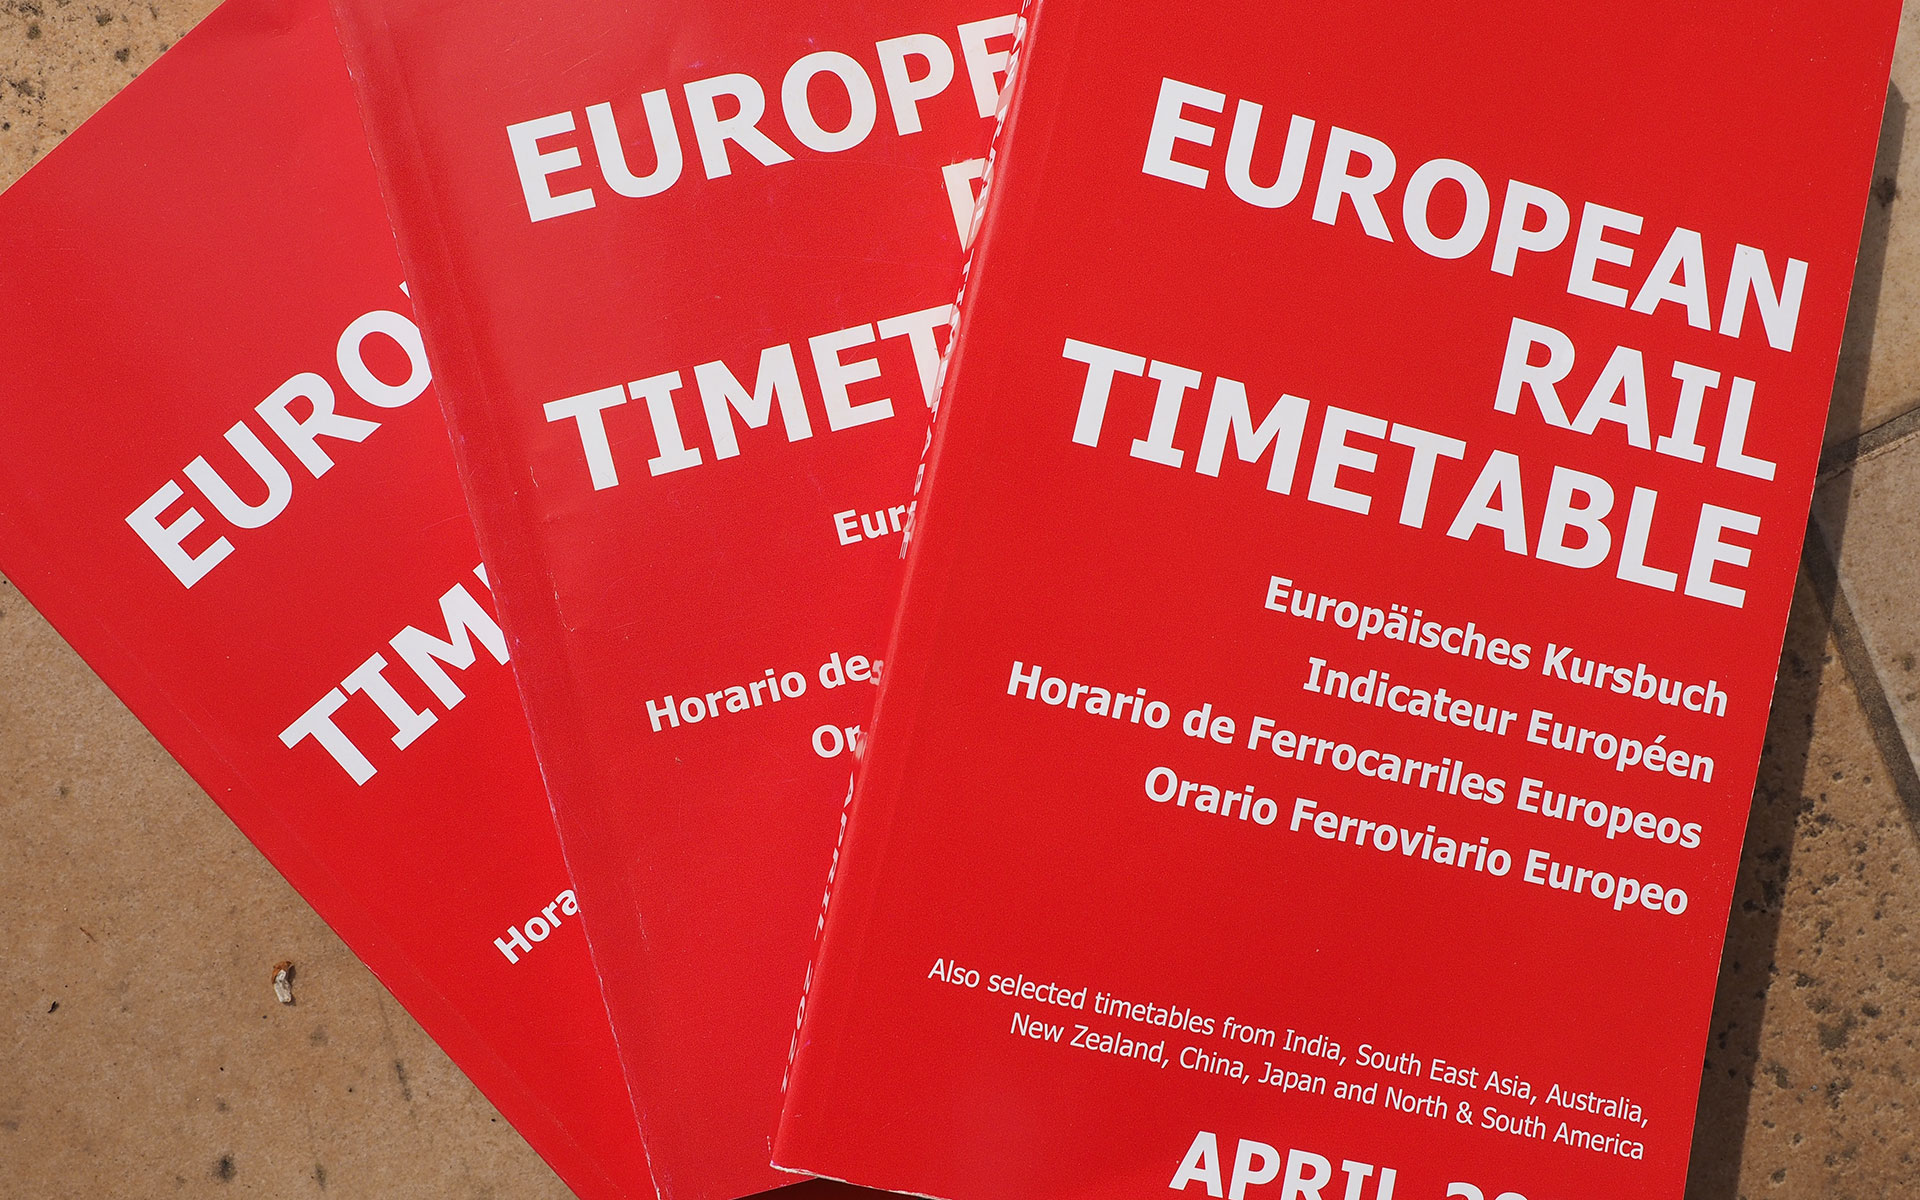 Each edition of the European Rail Timetable contains a Newslines section that captures the changes in European rail services (photo © hidden europe).